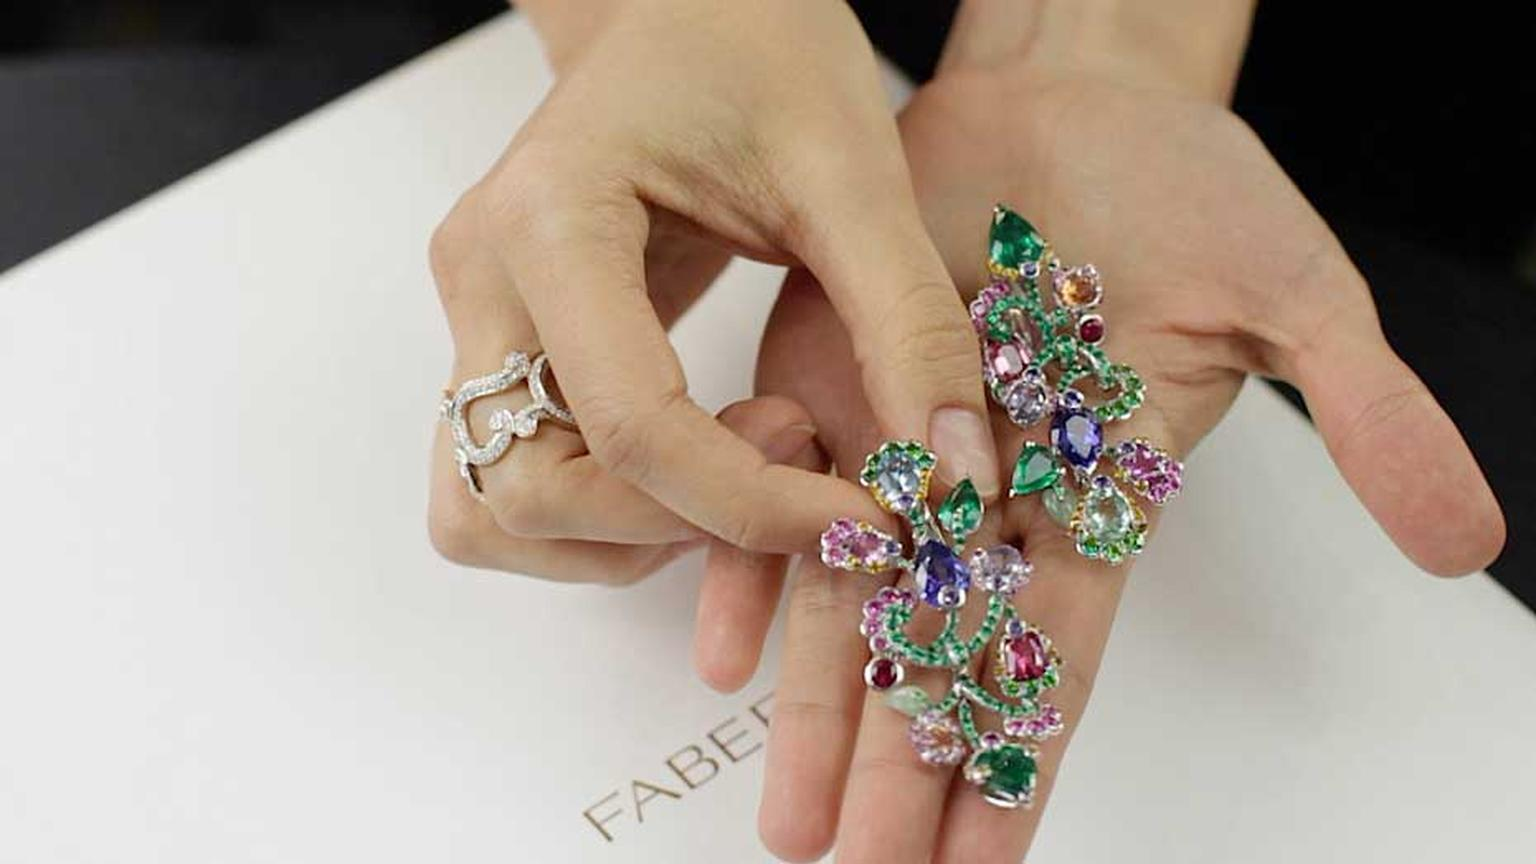 Fabergé earrings in the form of beautiful blossoms, gleaming with coloured gemstones.